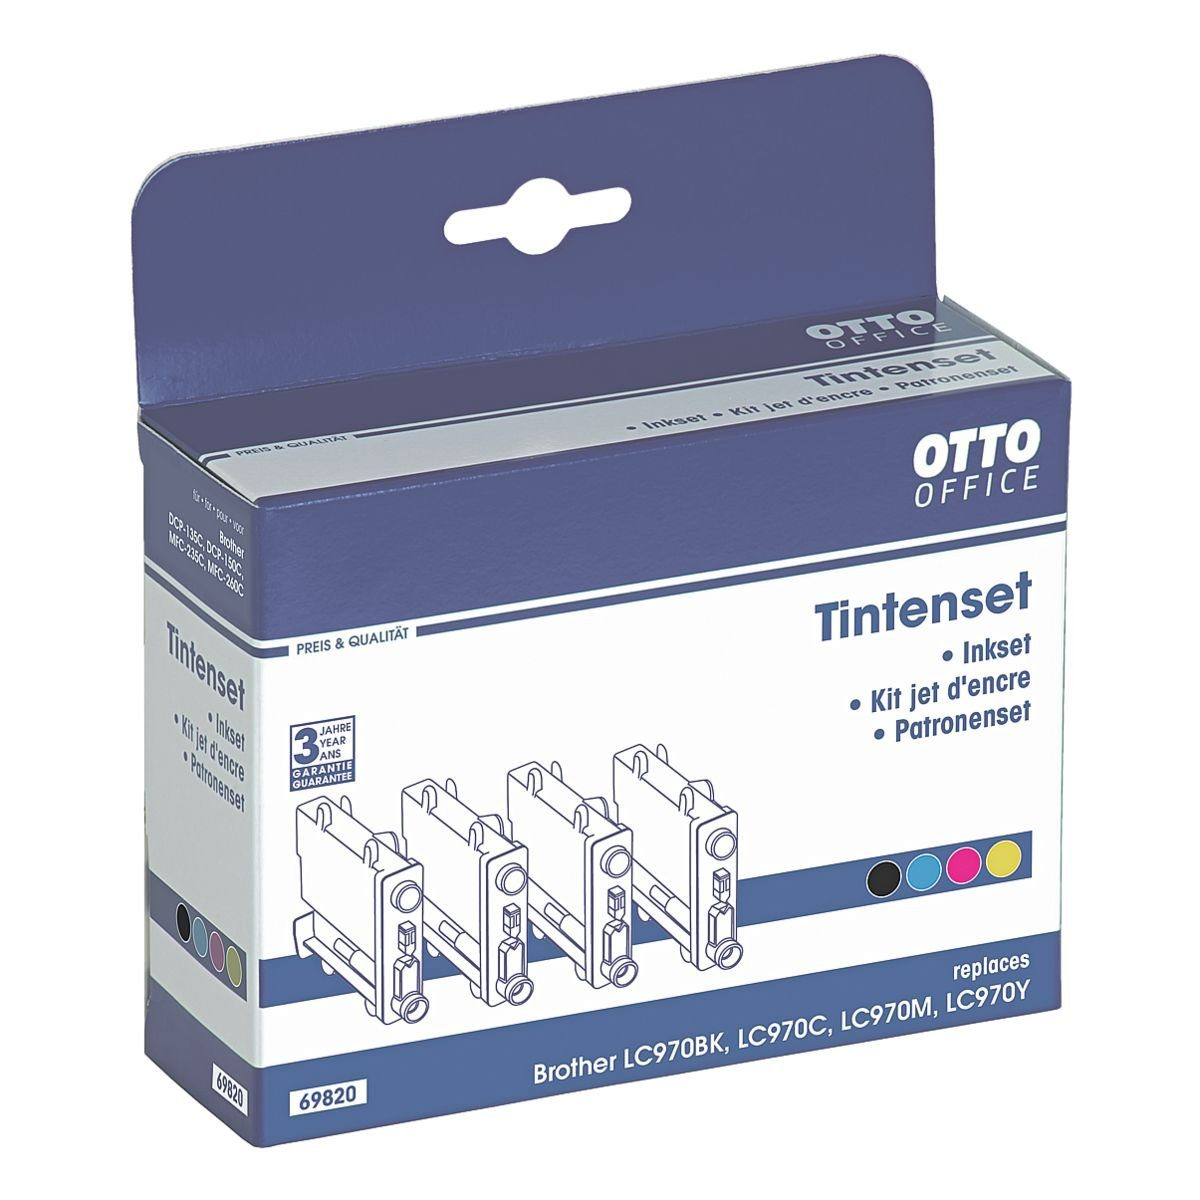 OTTO Office Standard Tintenpatronen-Set ersetzt Brother »LC970«